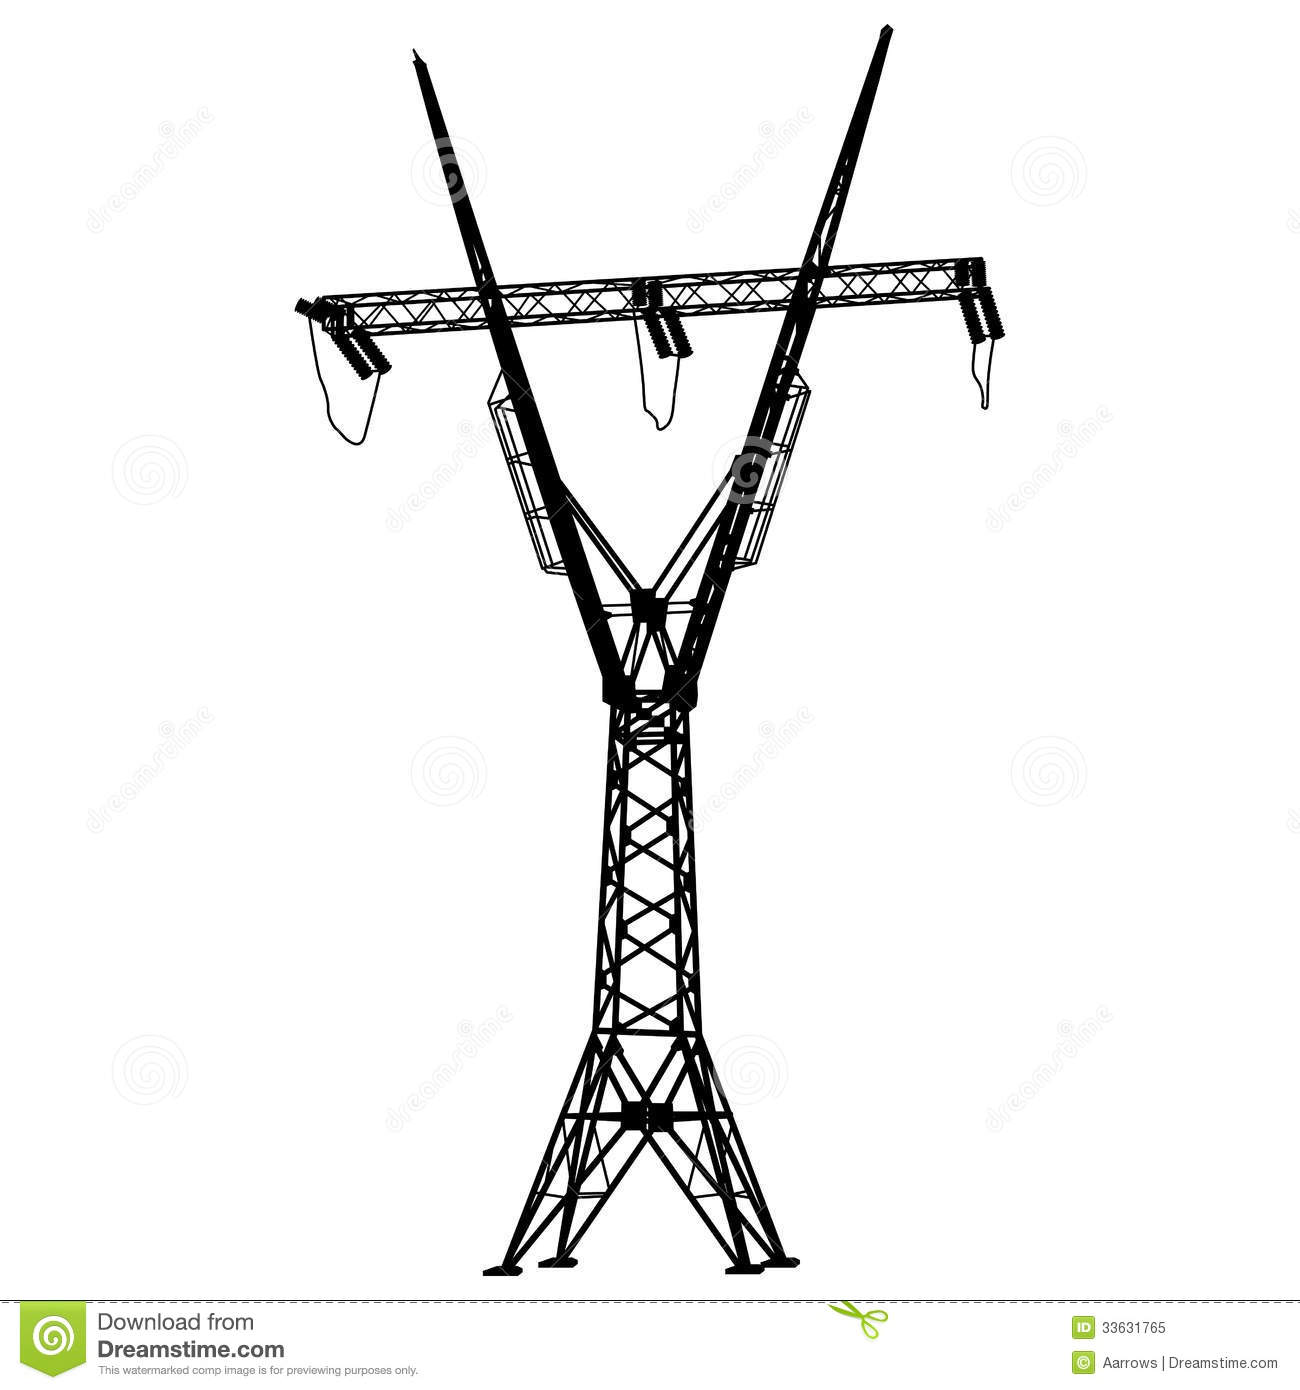 Voltage Power Lines Royalty Free Stock Photo